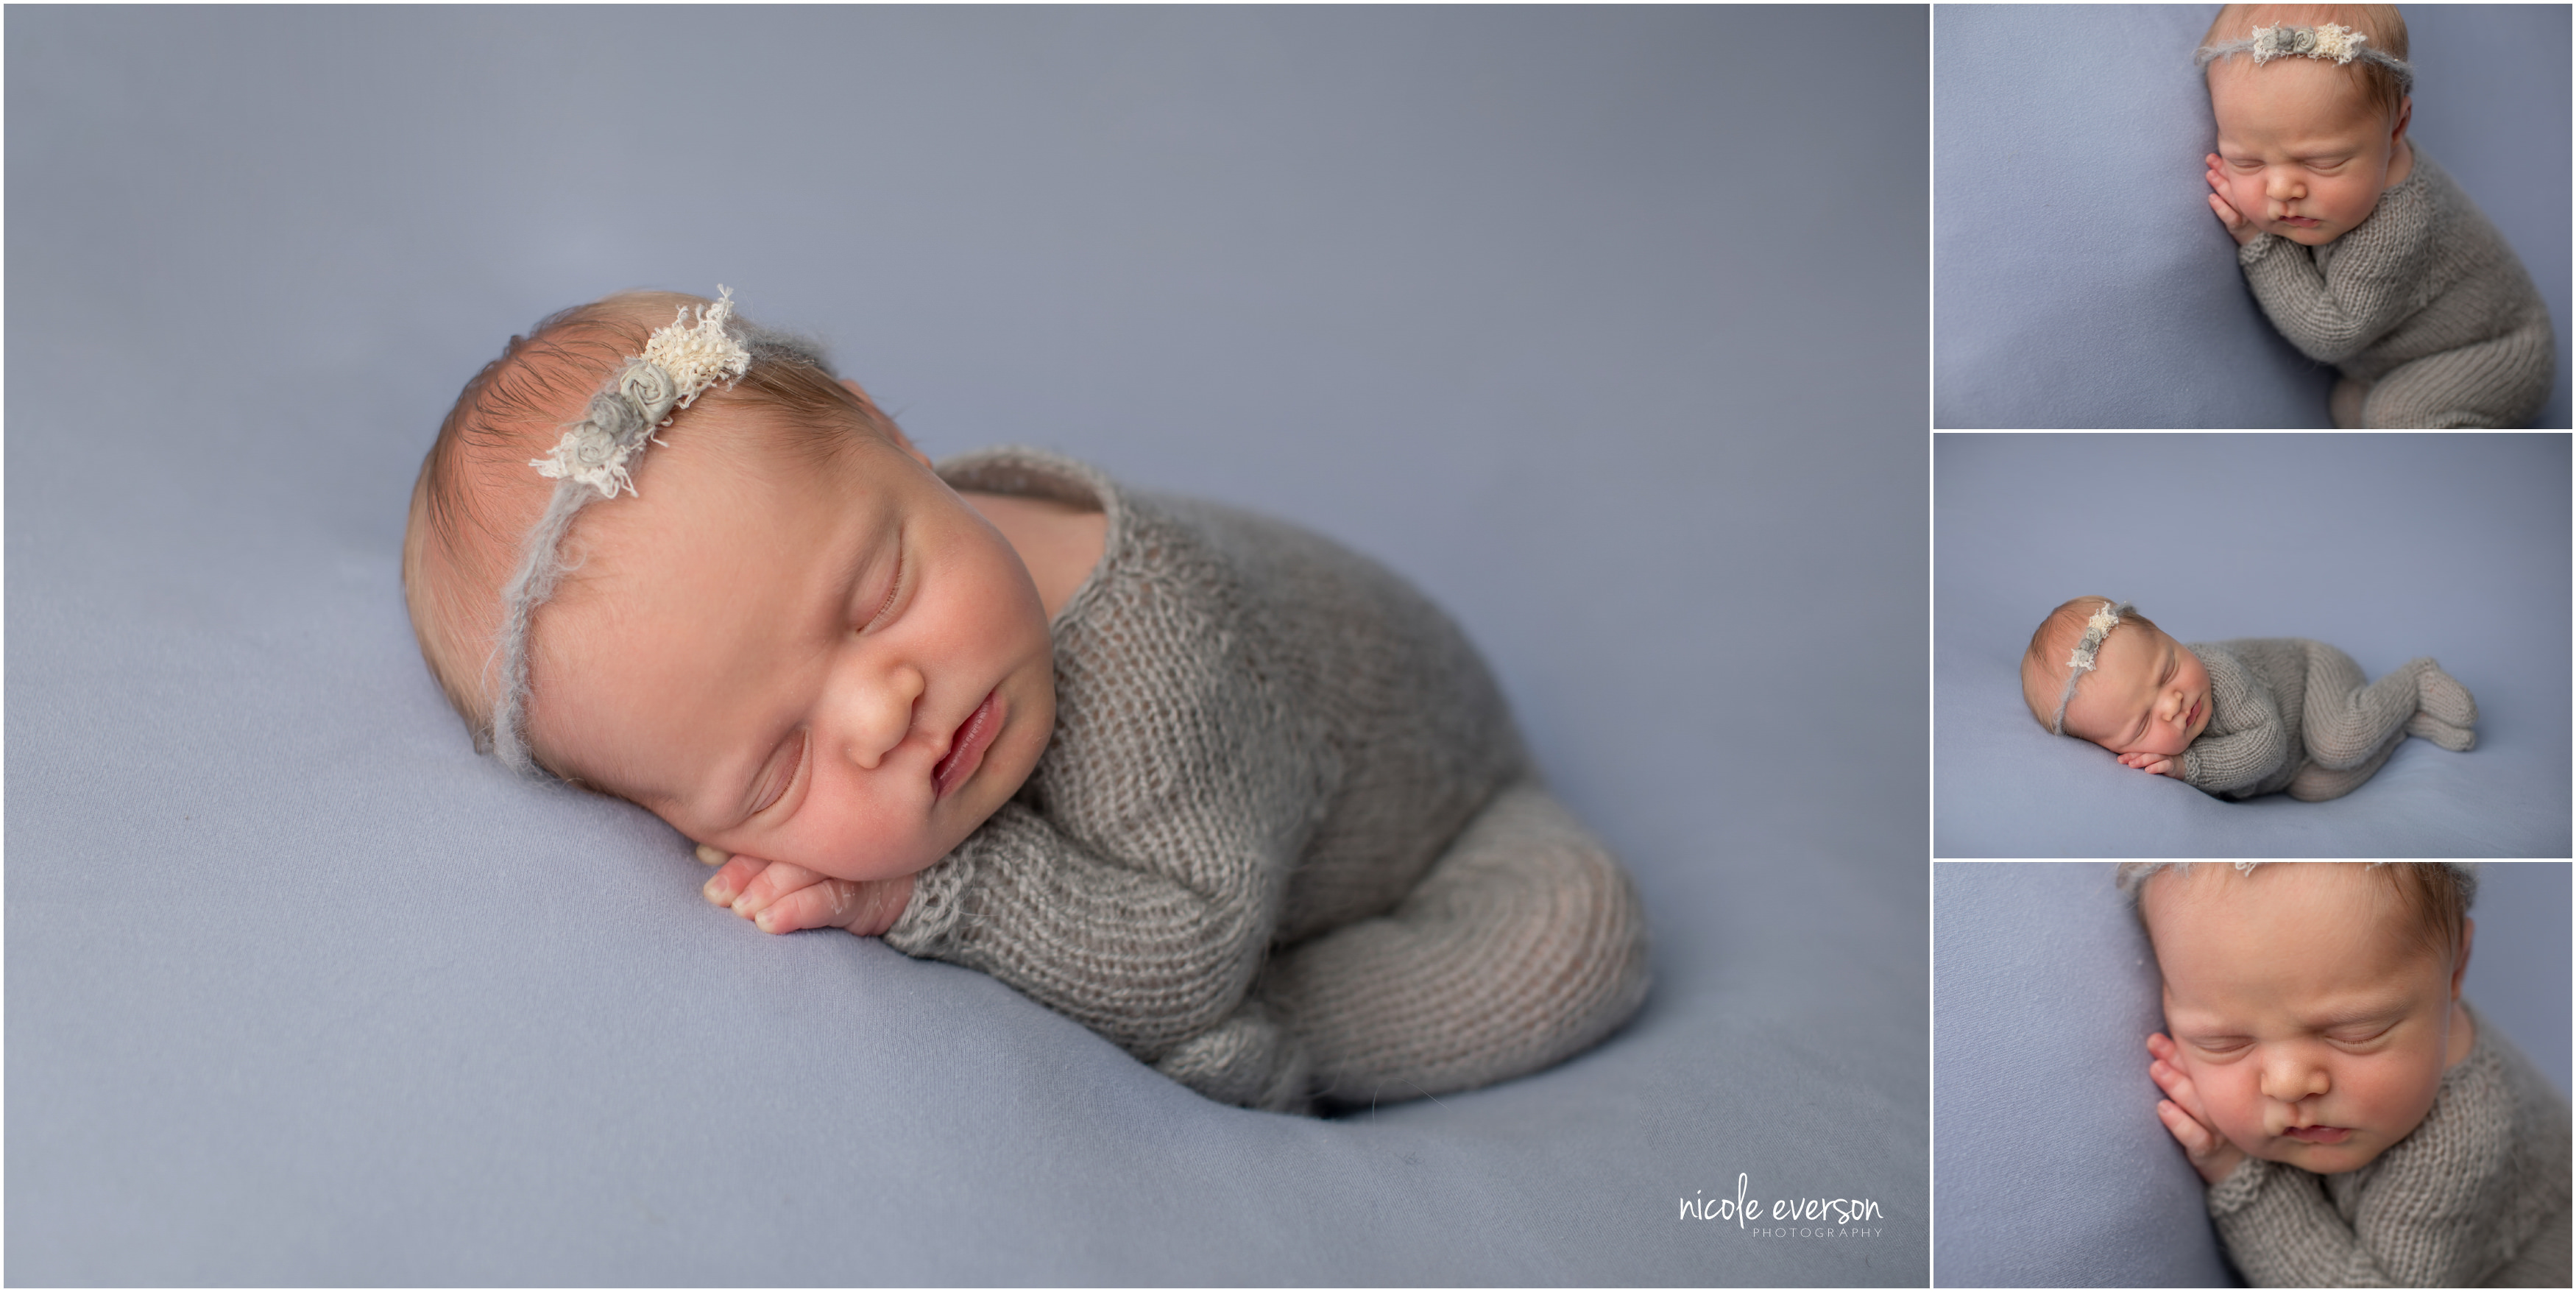 nebworn photo on a blue backdrop wearing a grey knit newborn outfit